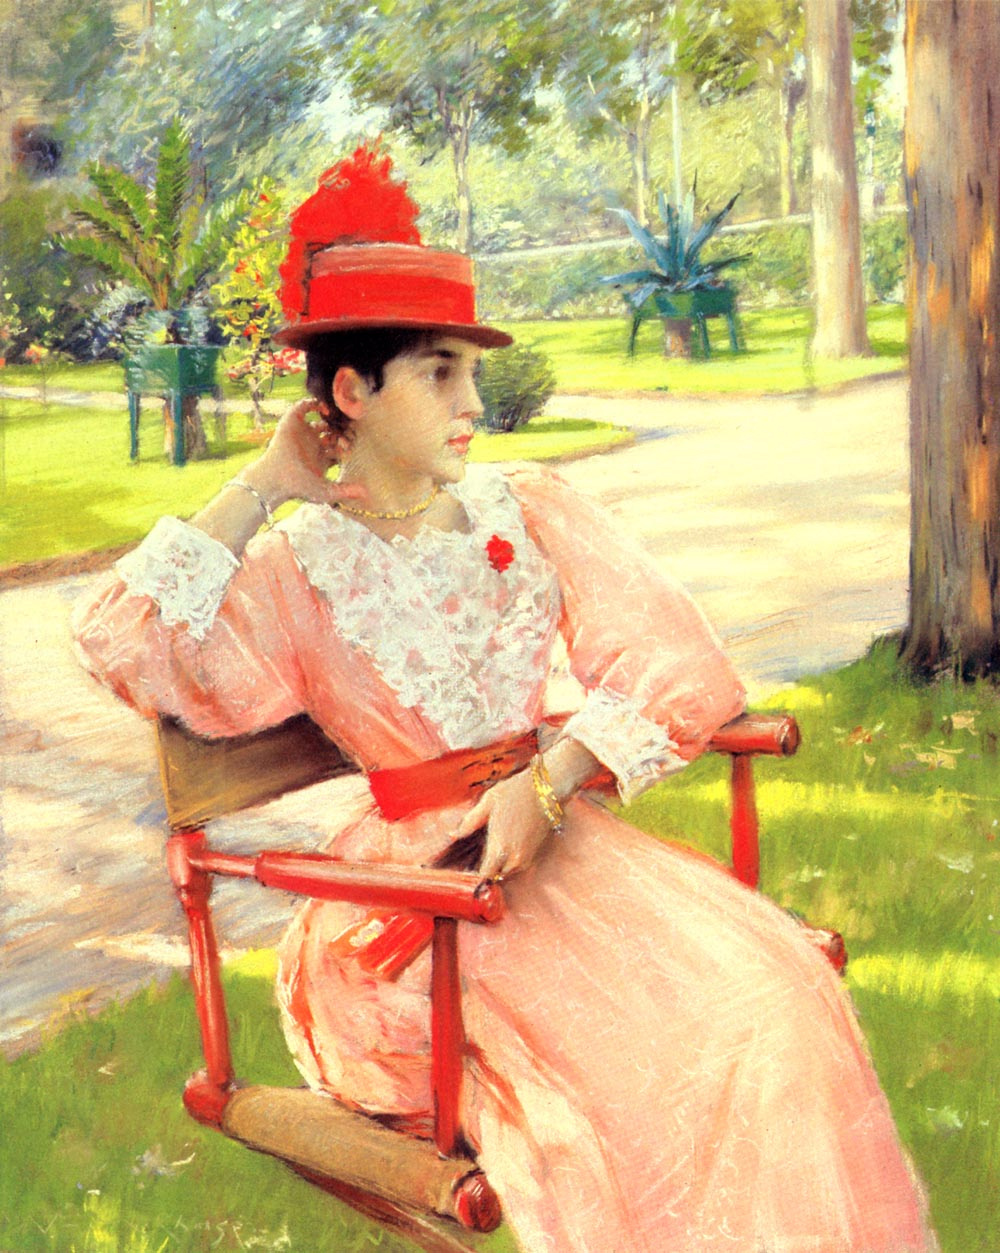 William Merritt Chase. In the second half of the day in the Park